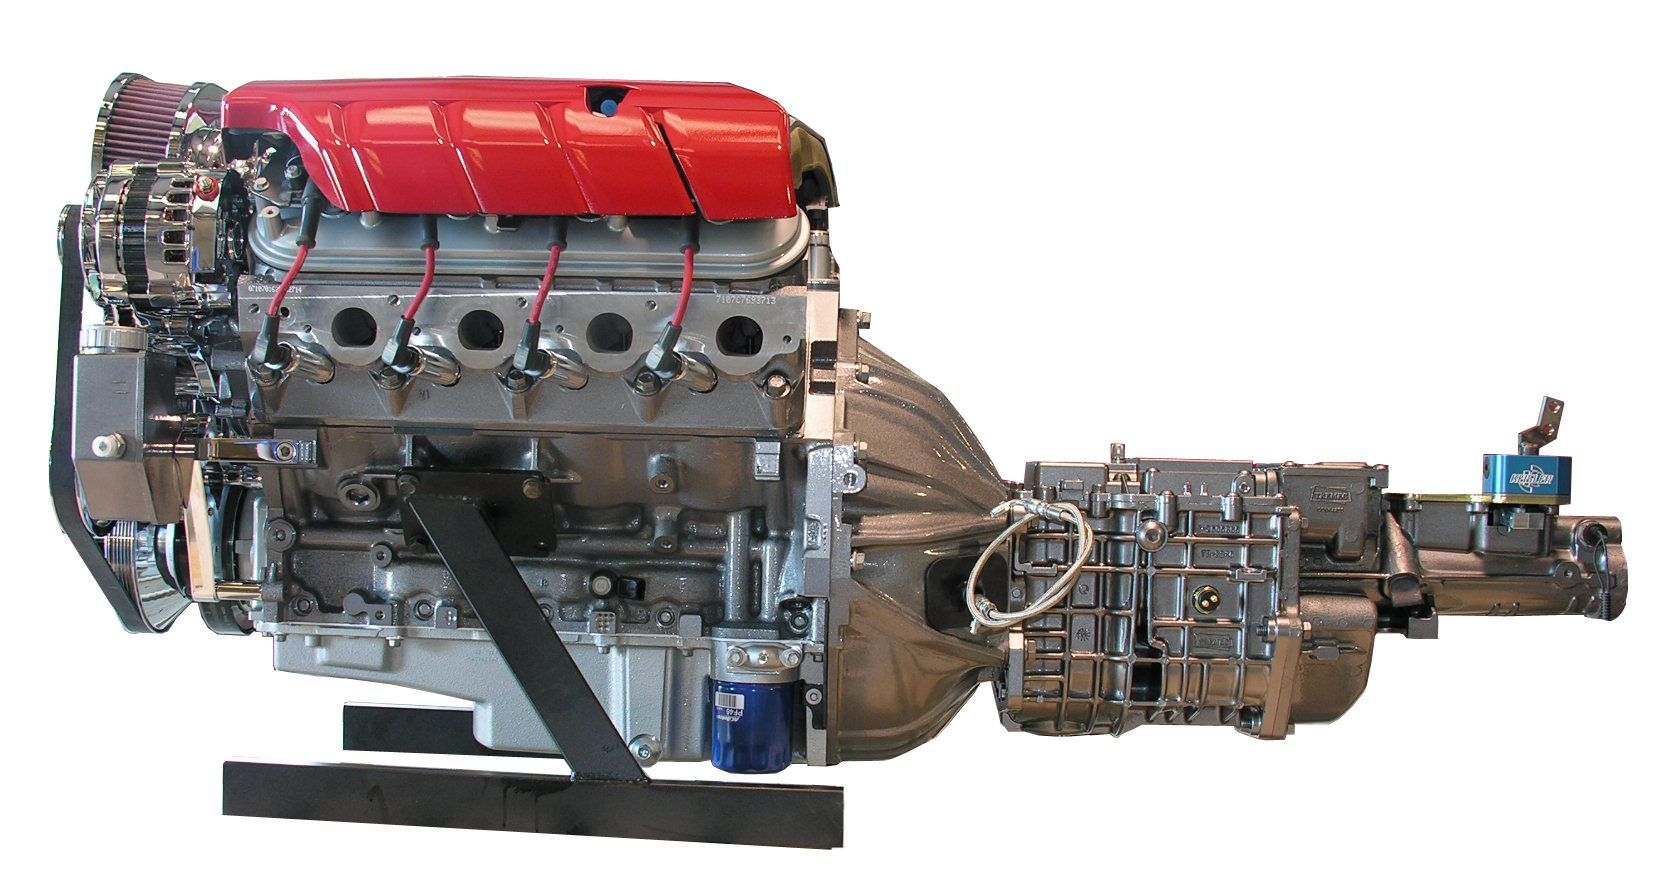 Ls3 Engine With Tko600 Transmission Charcoal Paint 430hp 2015 Wiring Diagram Spsenginescom